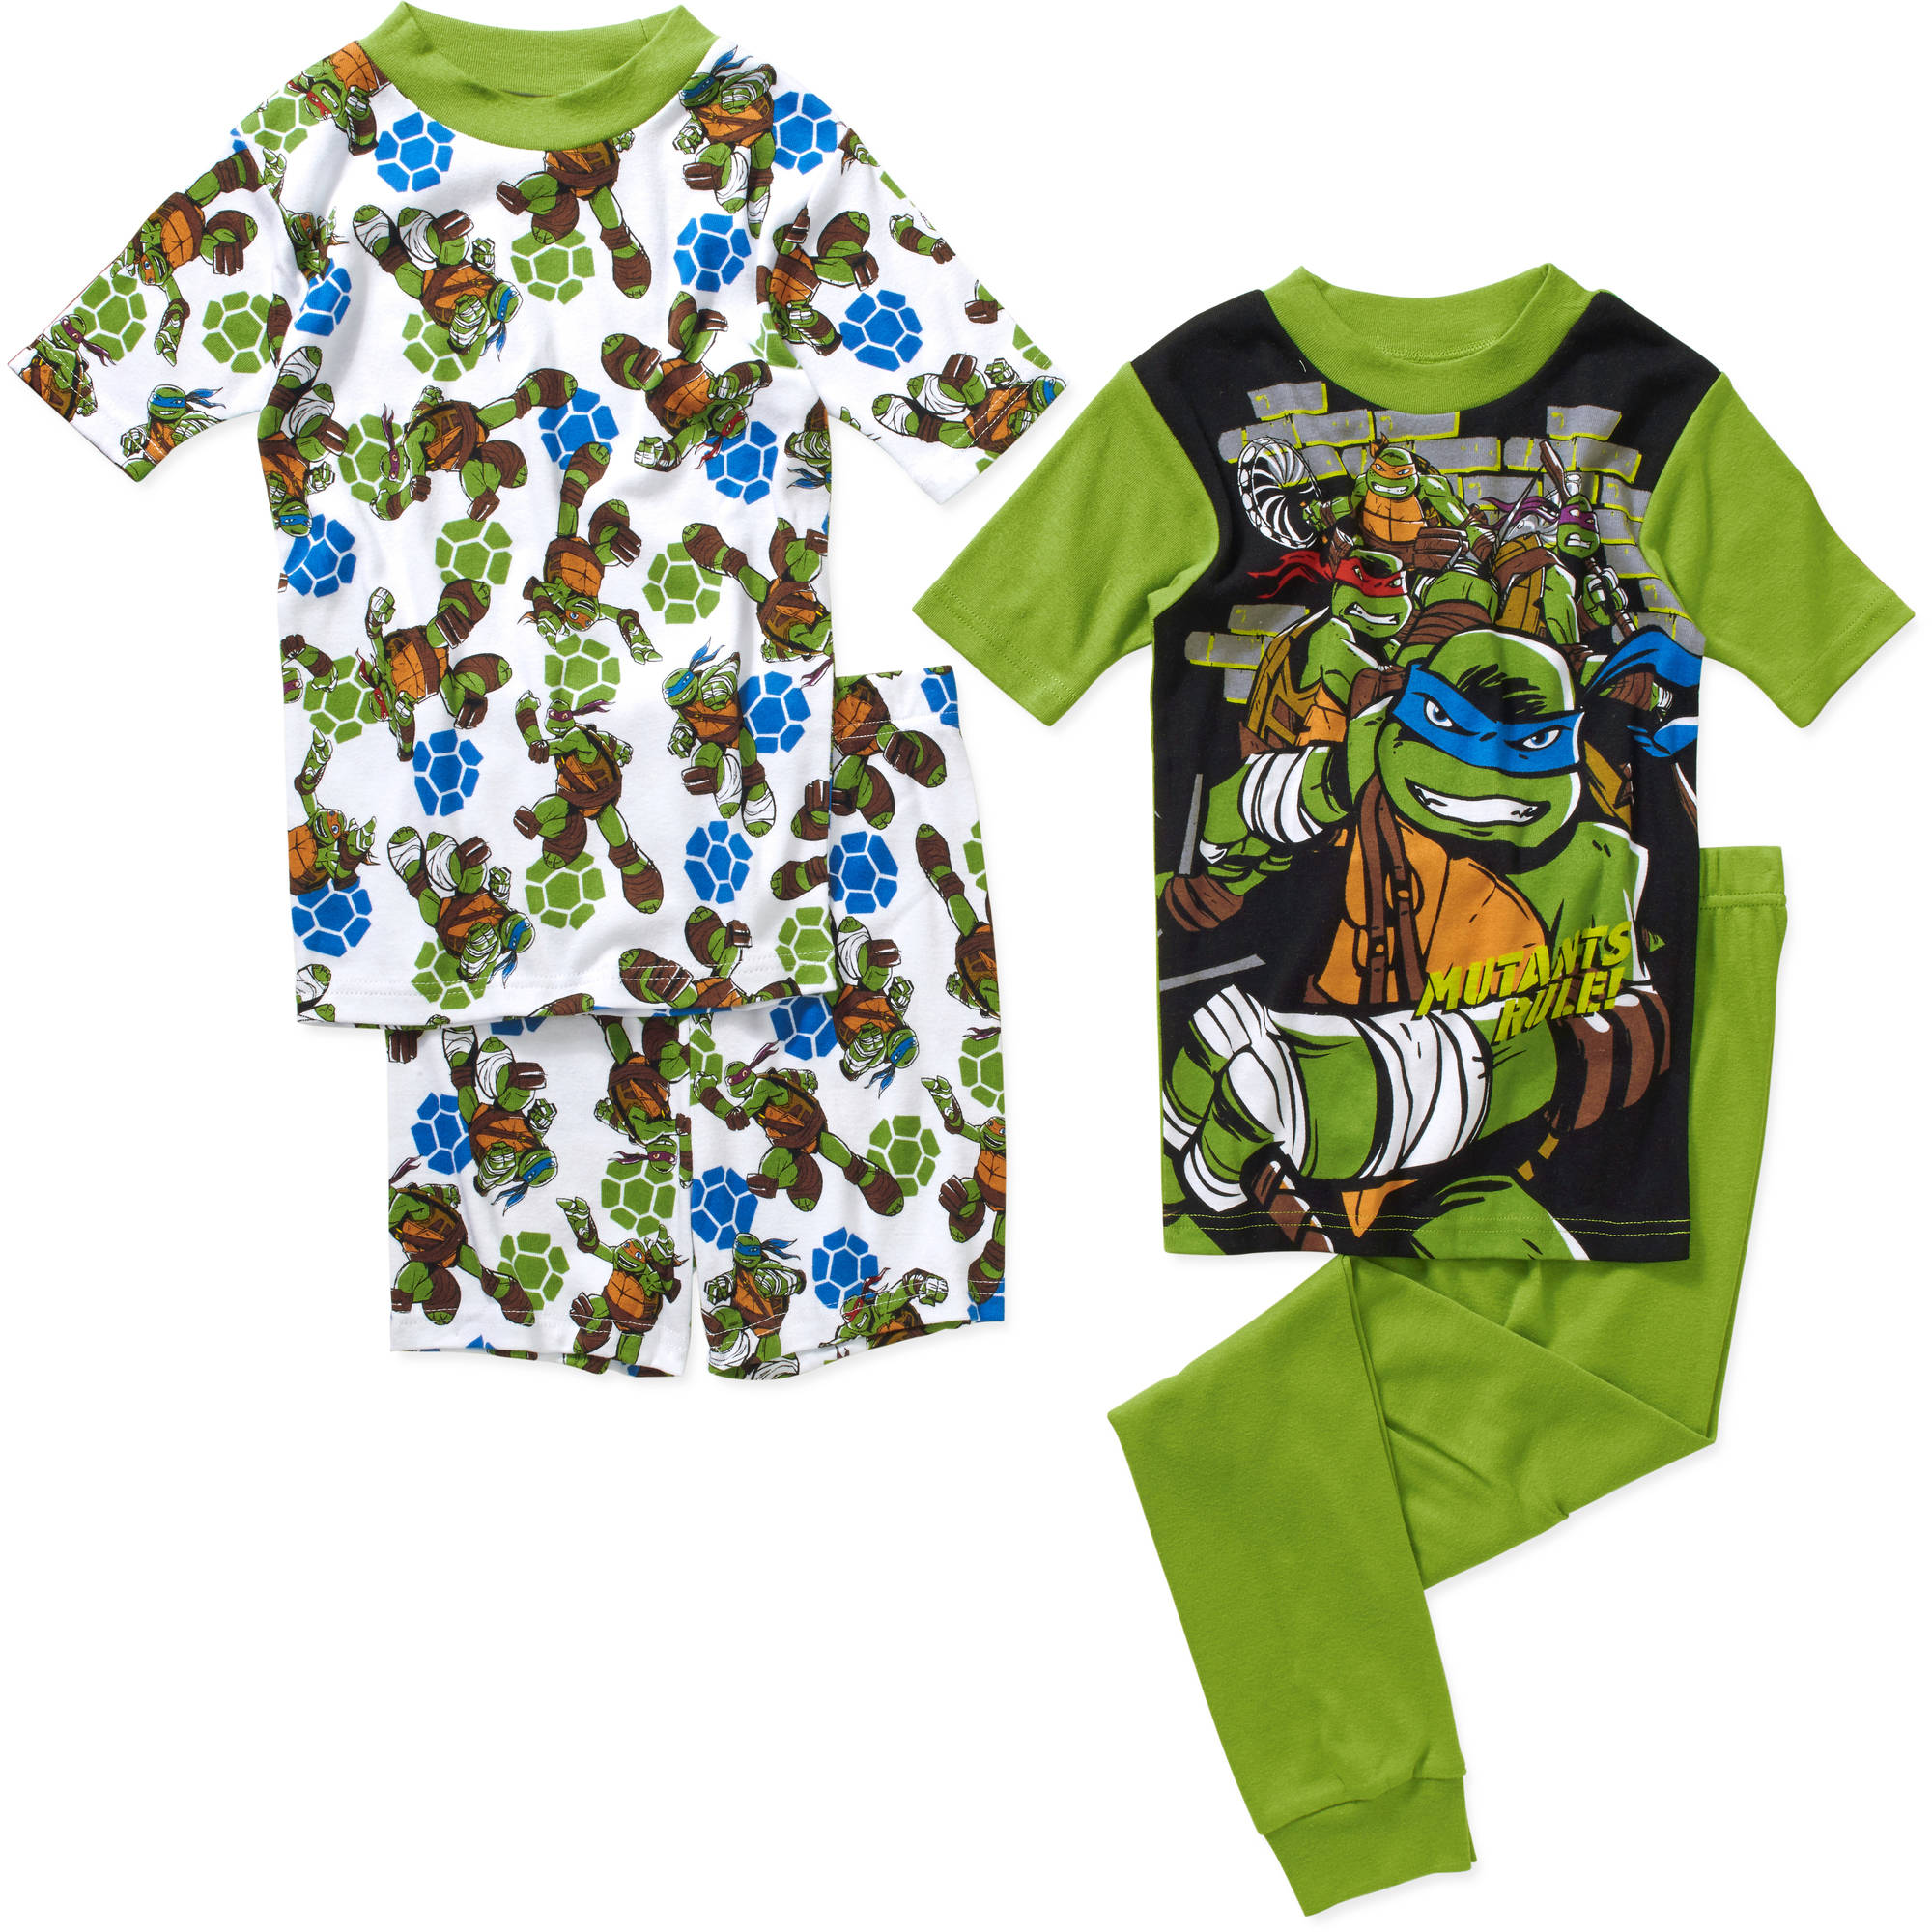 Teenage Mutant Ninja Turtles Boys' License Tight Fit Cotton Short Sleeve Sleep Shirt with Shorts and Pants 4 Piece Pajama Set